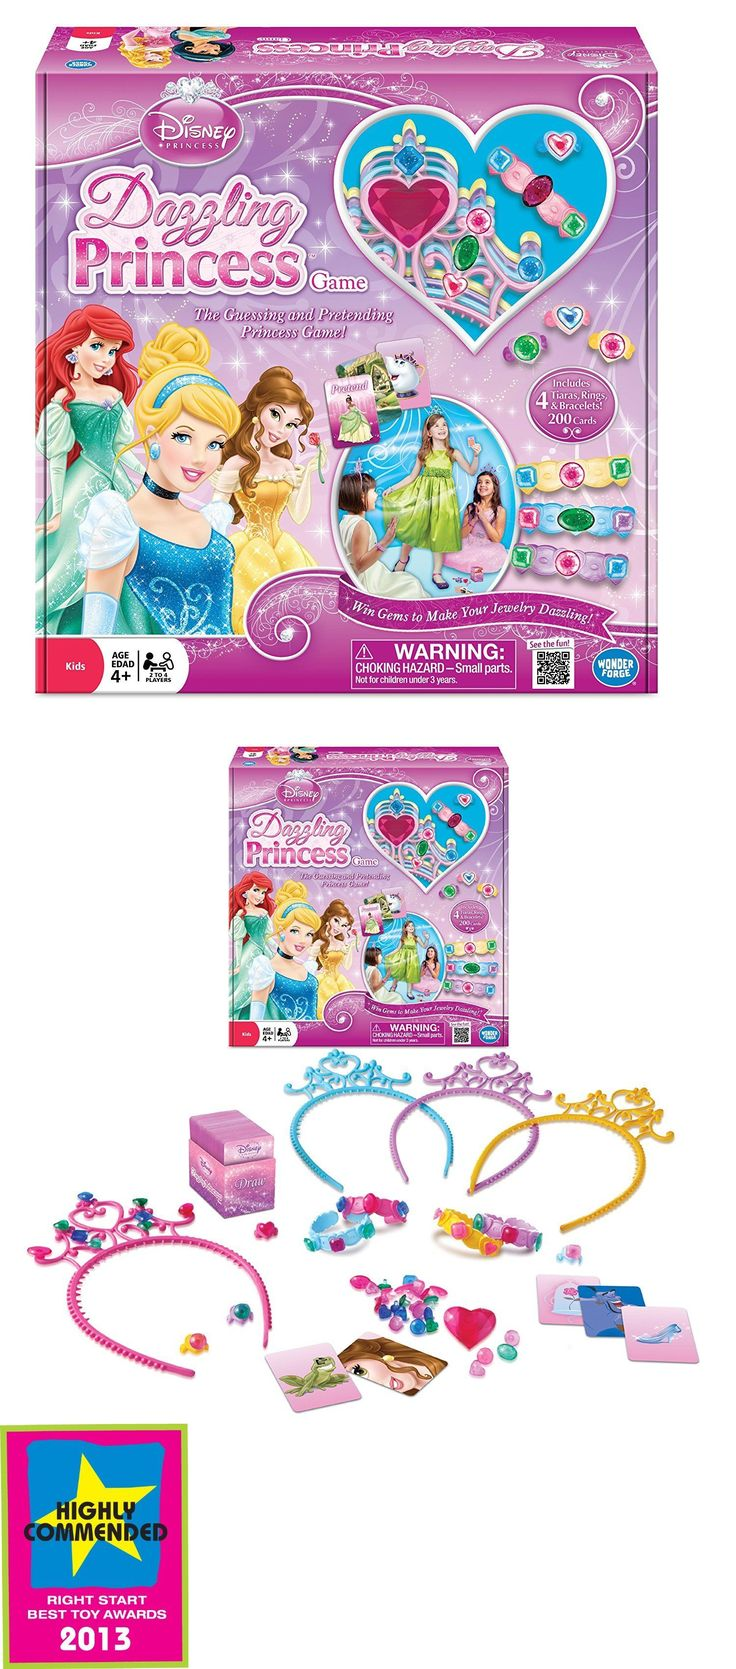 Game Pieces Parts 7317: New!!! Disney Princess Dazzling Princess Game - Free Shipping! -> BUY IT NOW ONLY: $49.99 on eBay!